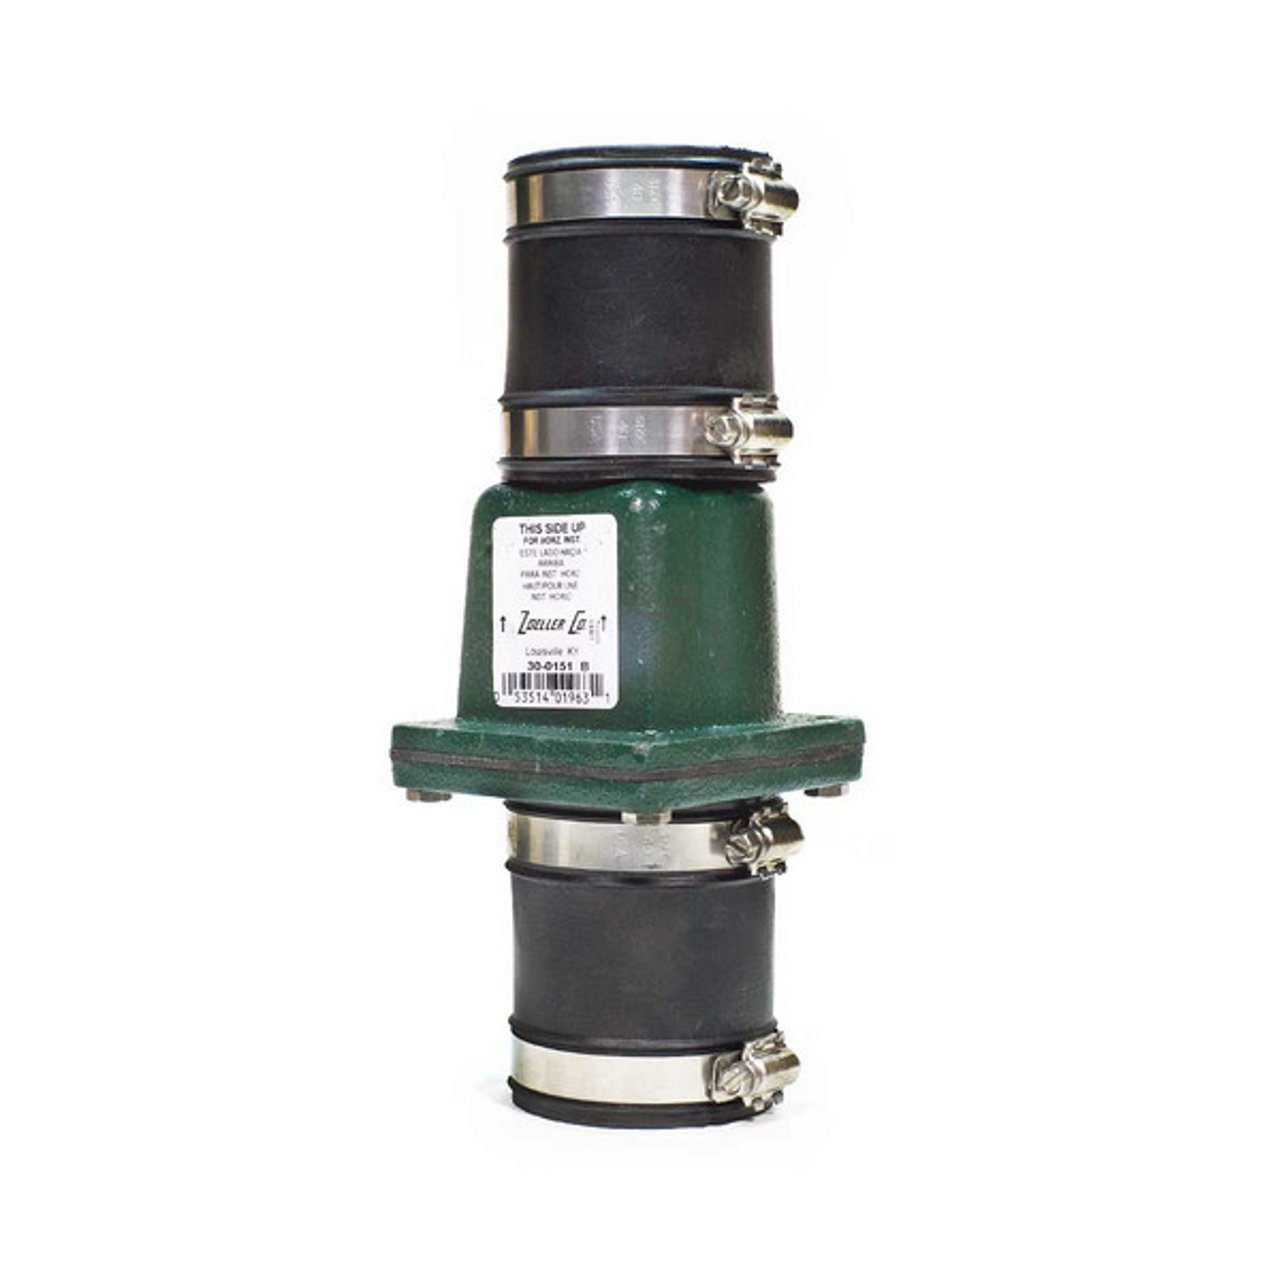 Zoeller 30-0151, 8.25 x 12.00 x 11.00 inches